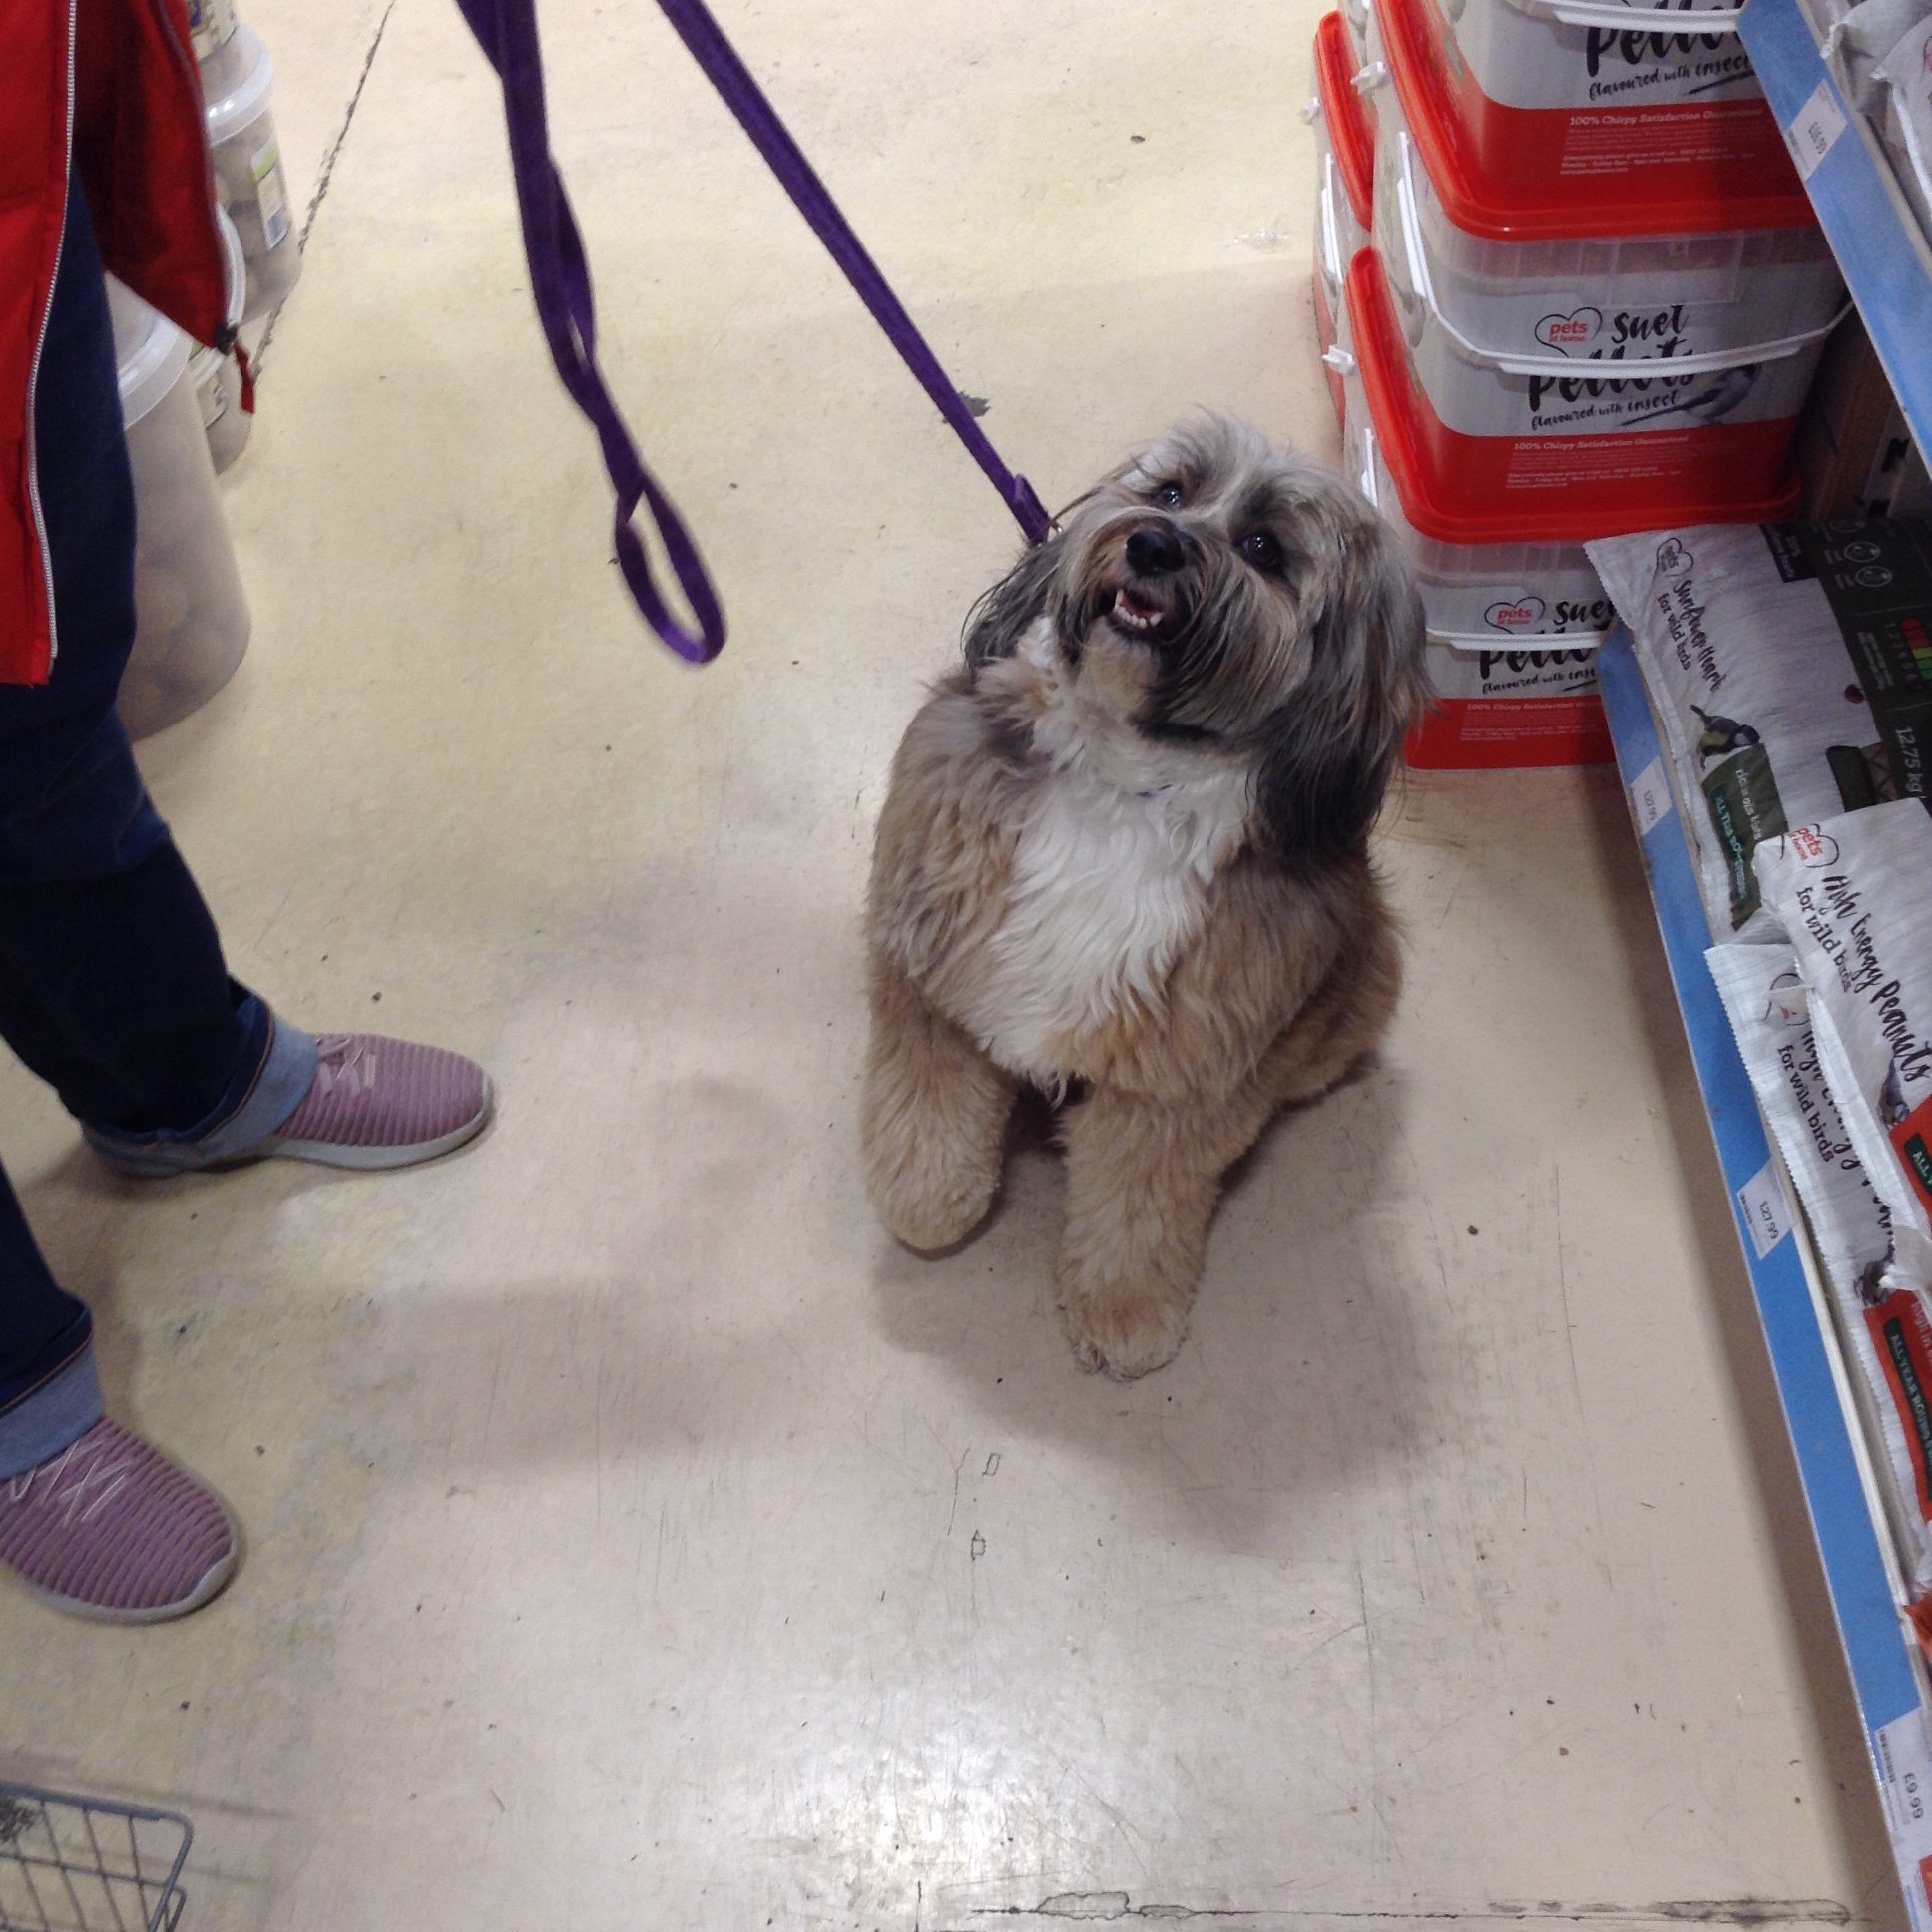 Tamworth Pets At Home And Groom Room On Twitter A Few Of Our Visitors Today Tamworth Staffordshire Petsathome Petsathometamworth Tamworthgroomroom Dog Pets Puppy Kitten Fish Birds Cats Smallanimal Wildbirds Reptile Puppylove